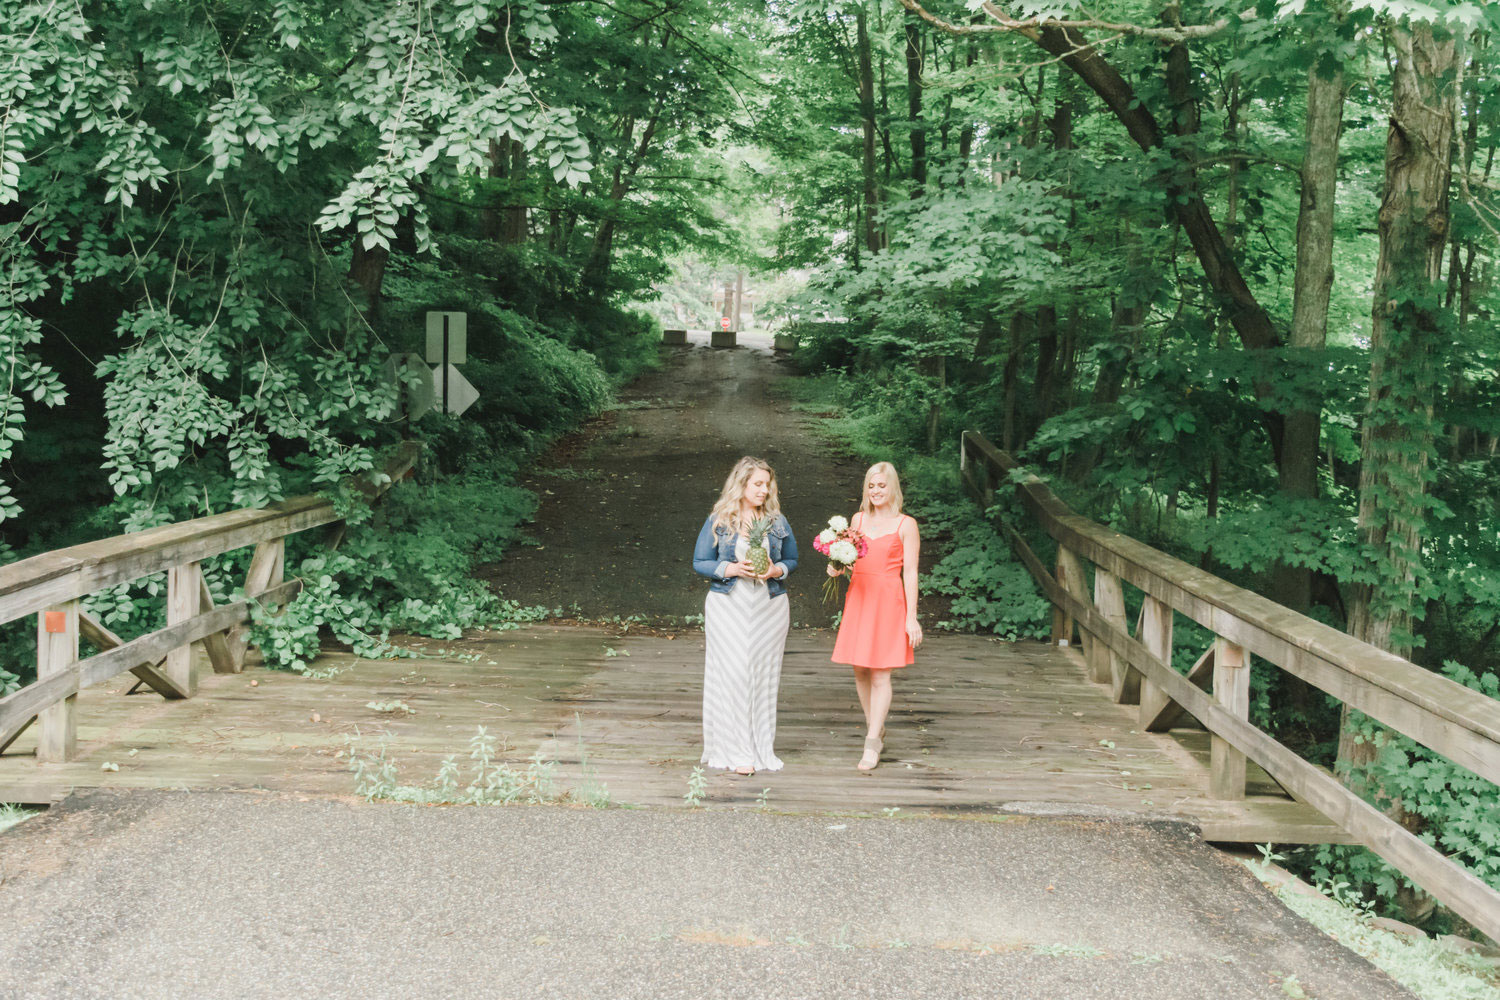 Jamie-Tomassetti-and-Katie-Ehlers-Walking-On-Bridge-SM.jpg